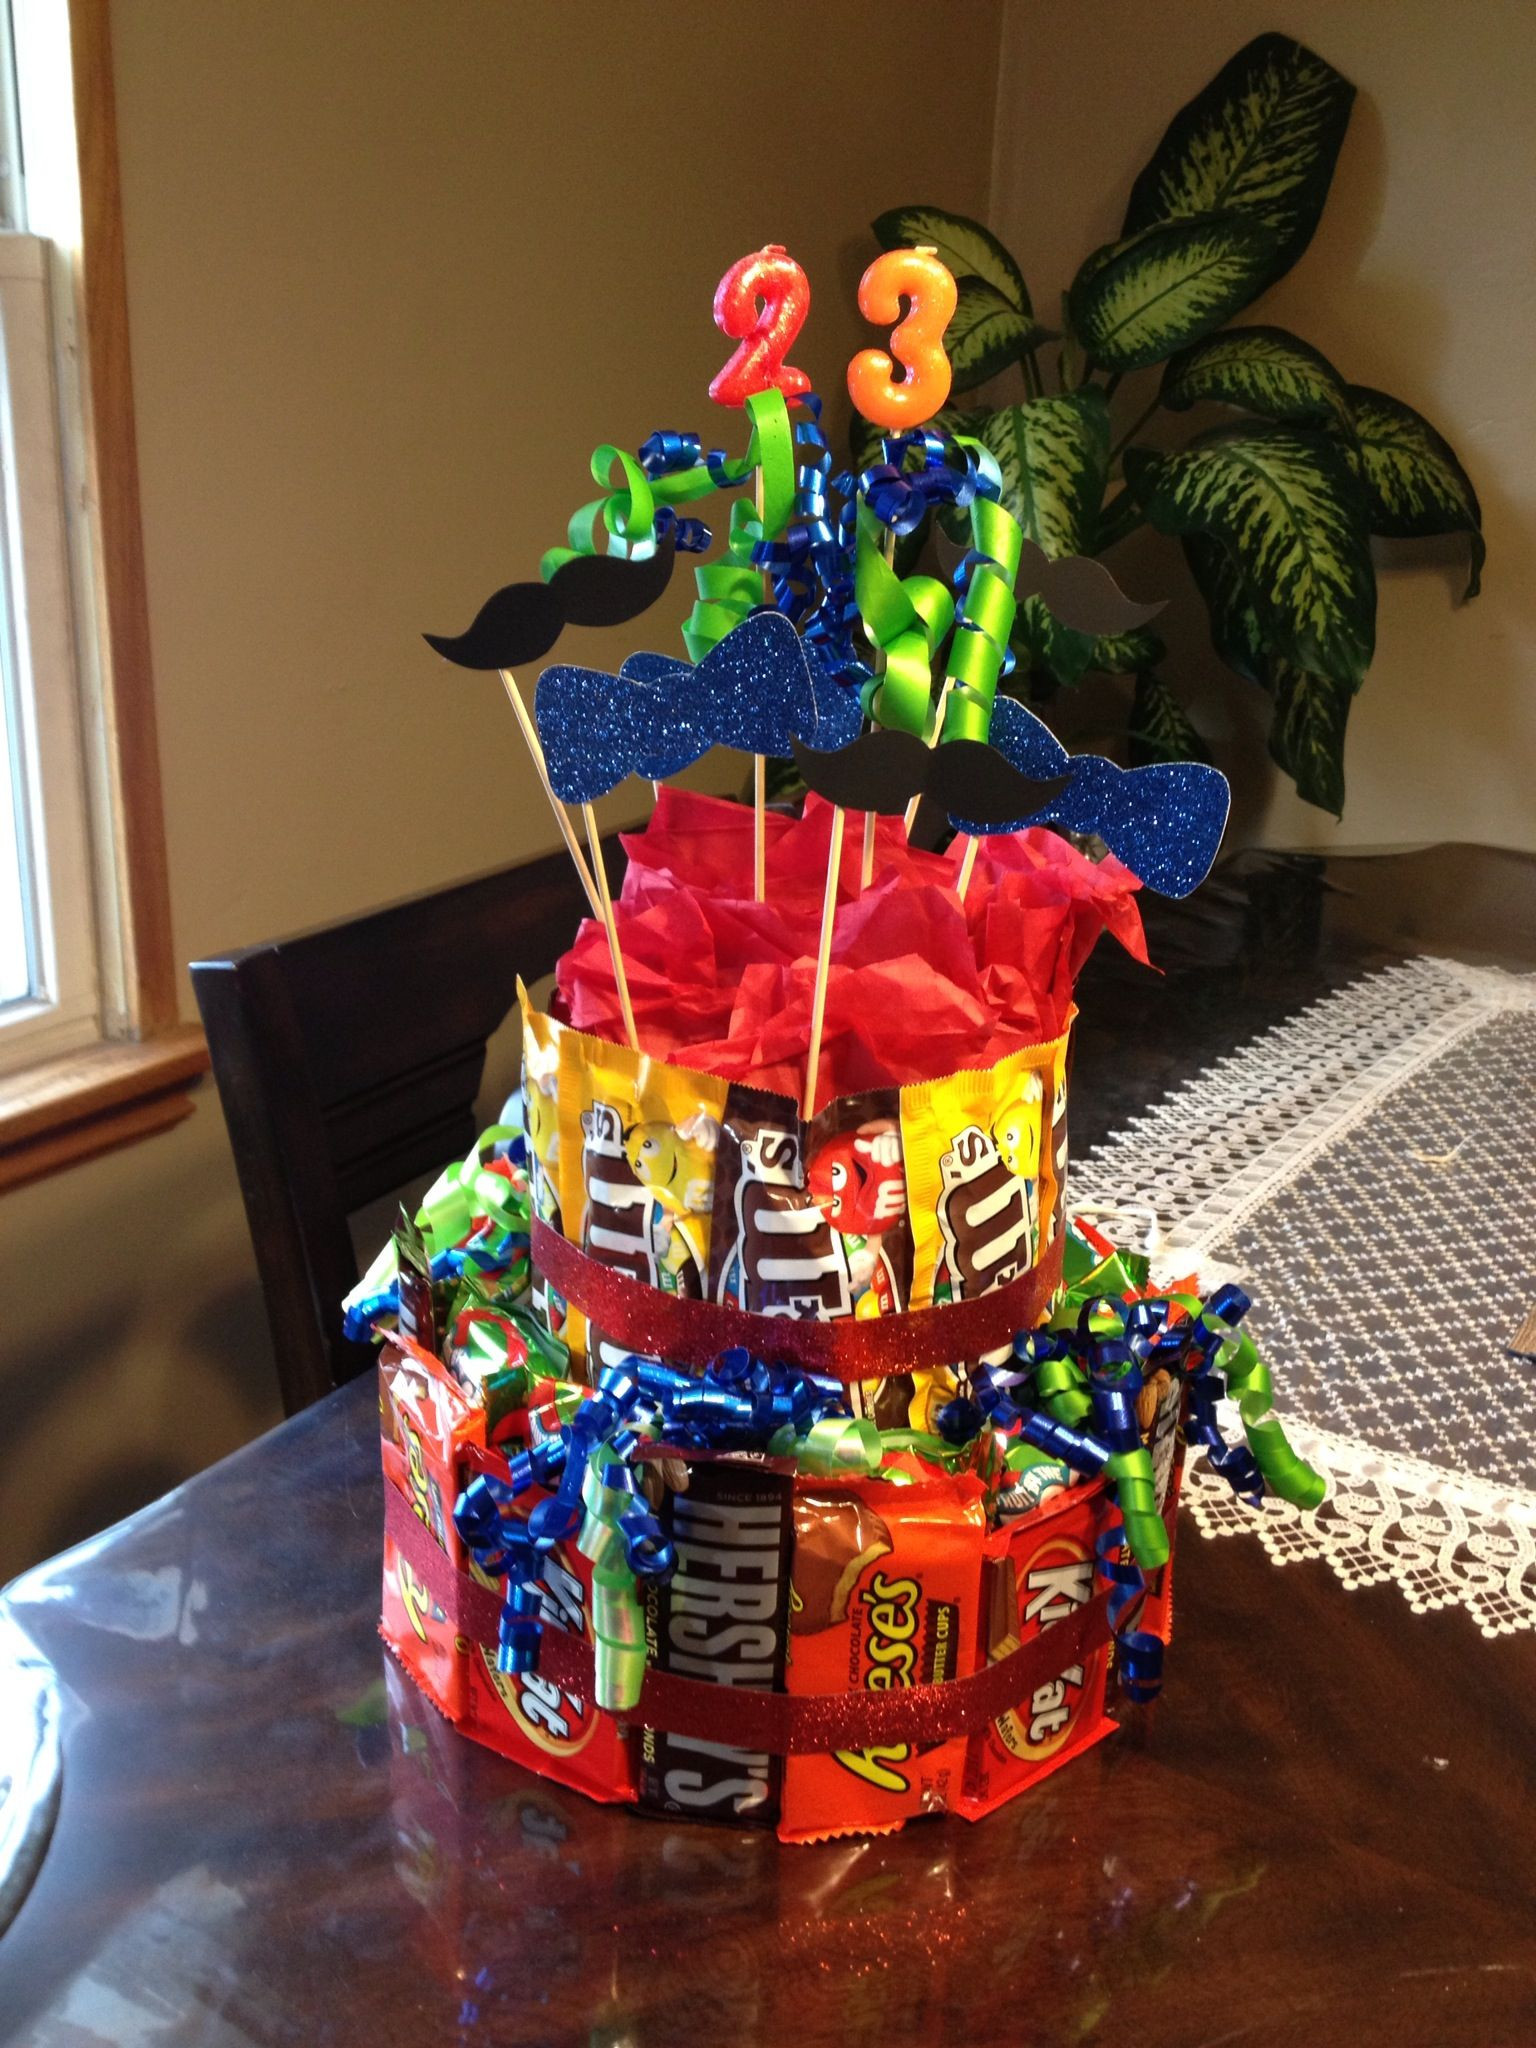 Birthday Party Ideas: Birthday Party Ideas For Boyfriends 23rd  Gift ...